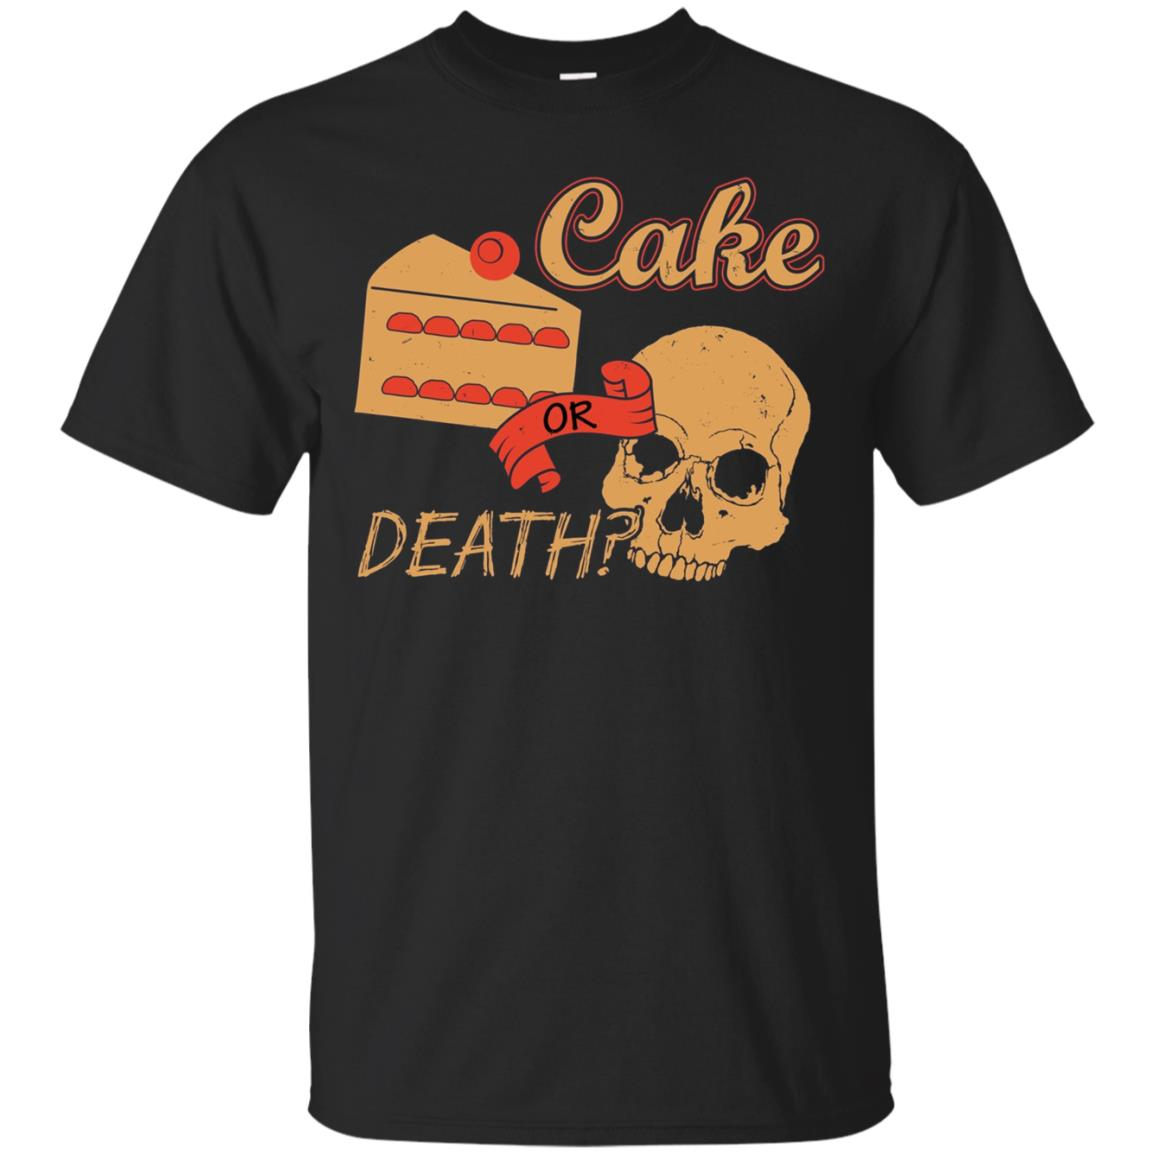 Cake Or Death T-Shirt For Men Or Woman Funny Tee